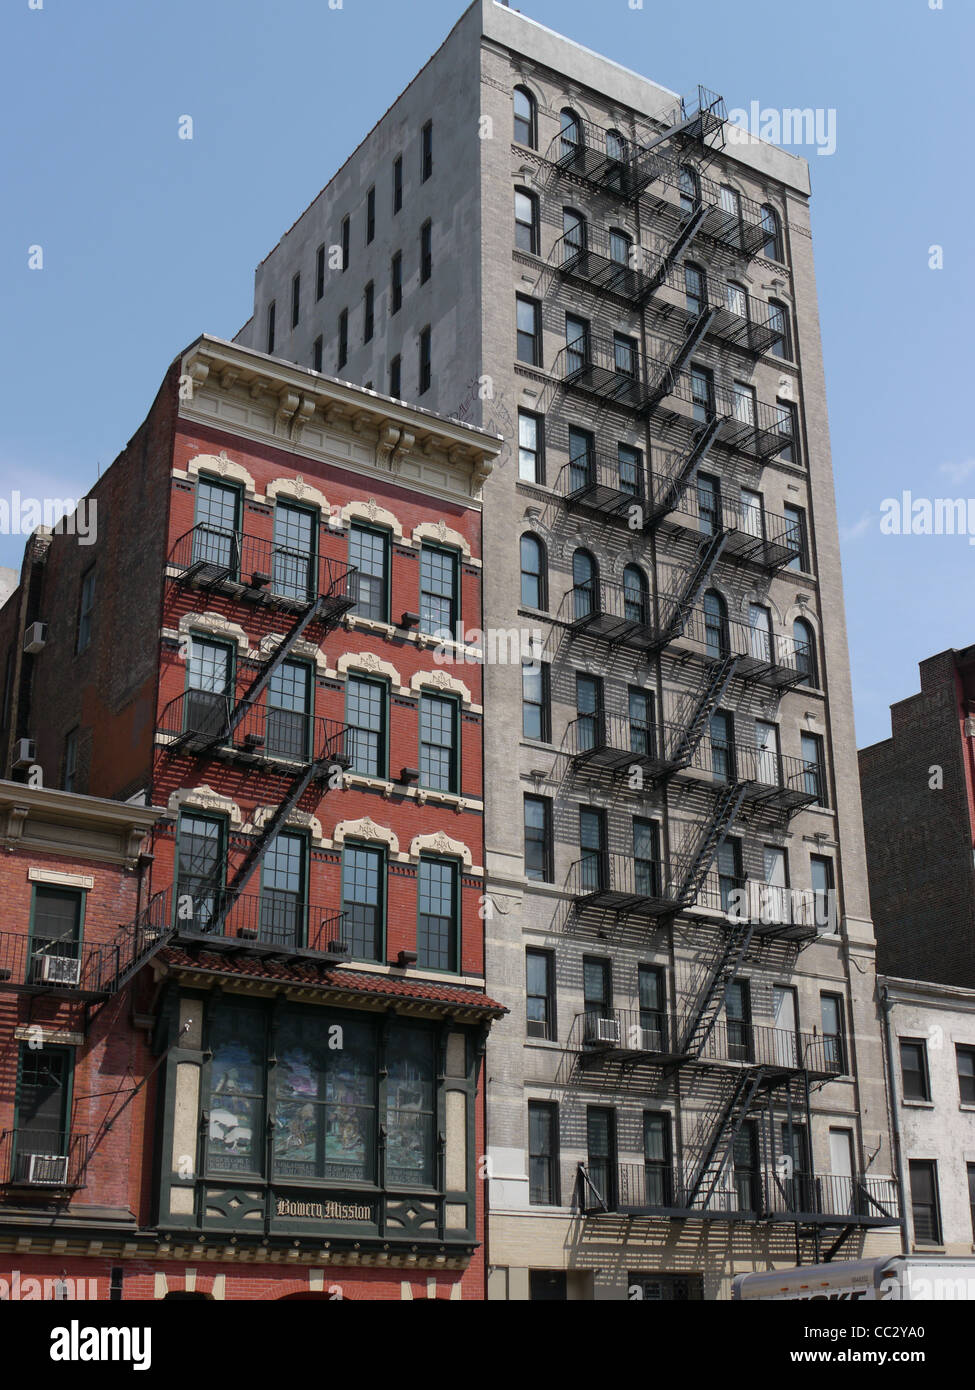 New York Old Office Buildings With Fire Escape Stock Photo 41861960